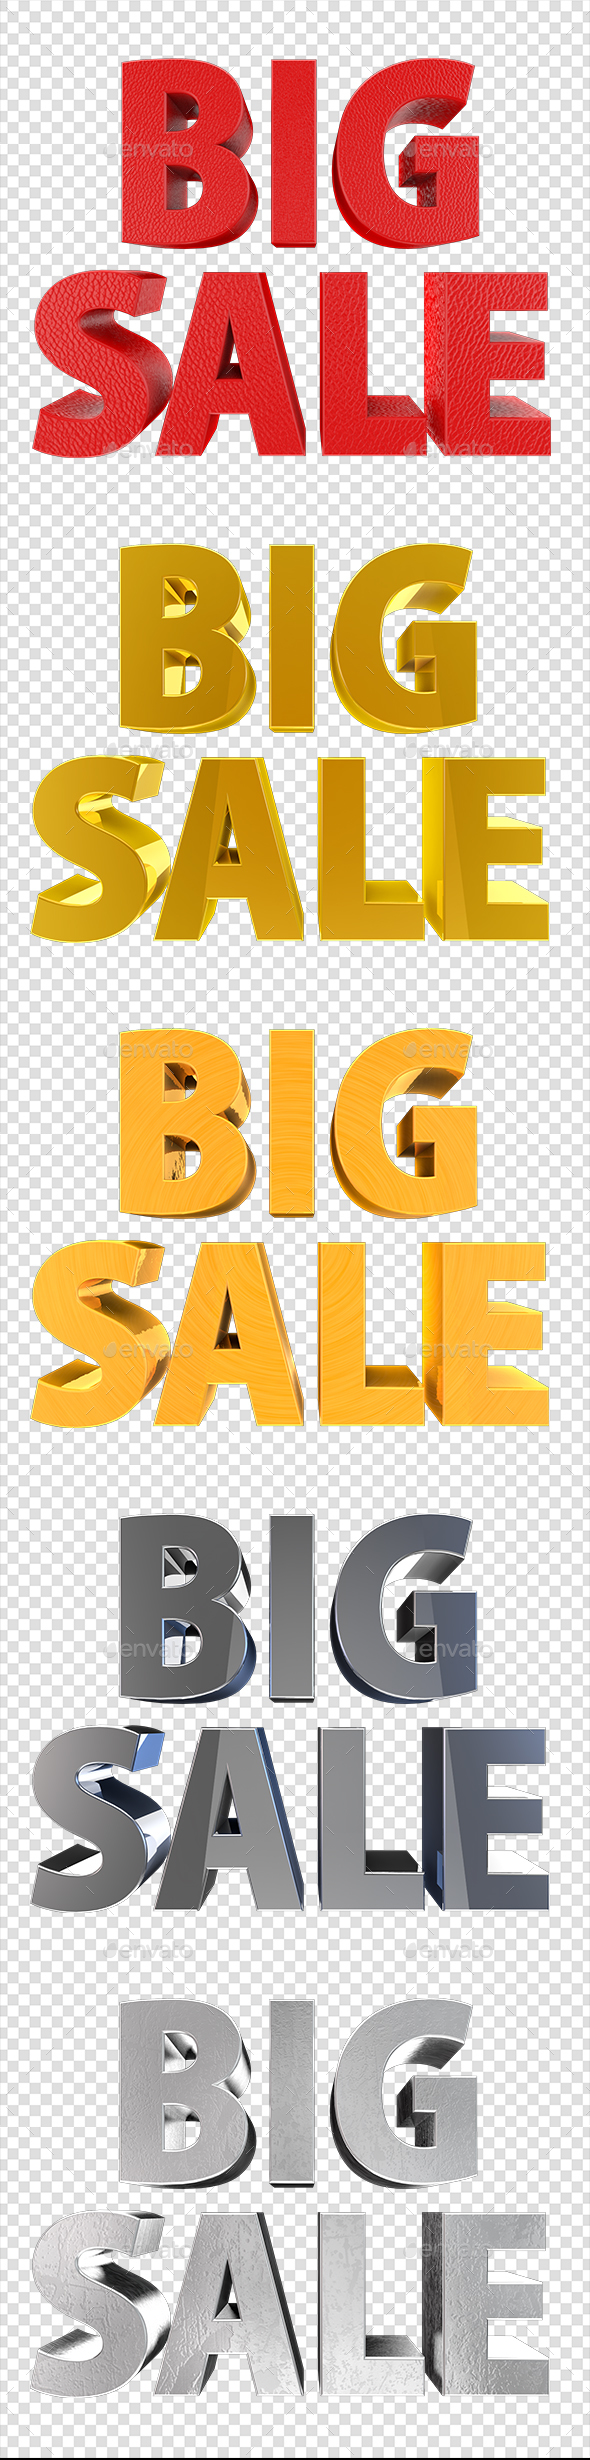 Big Sale - Text 3D Renders